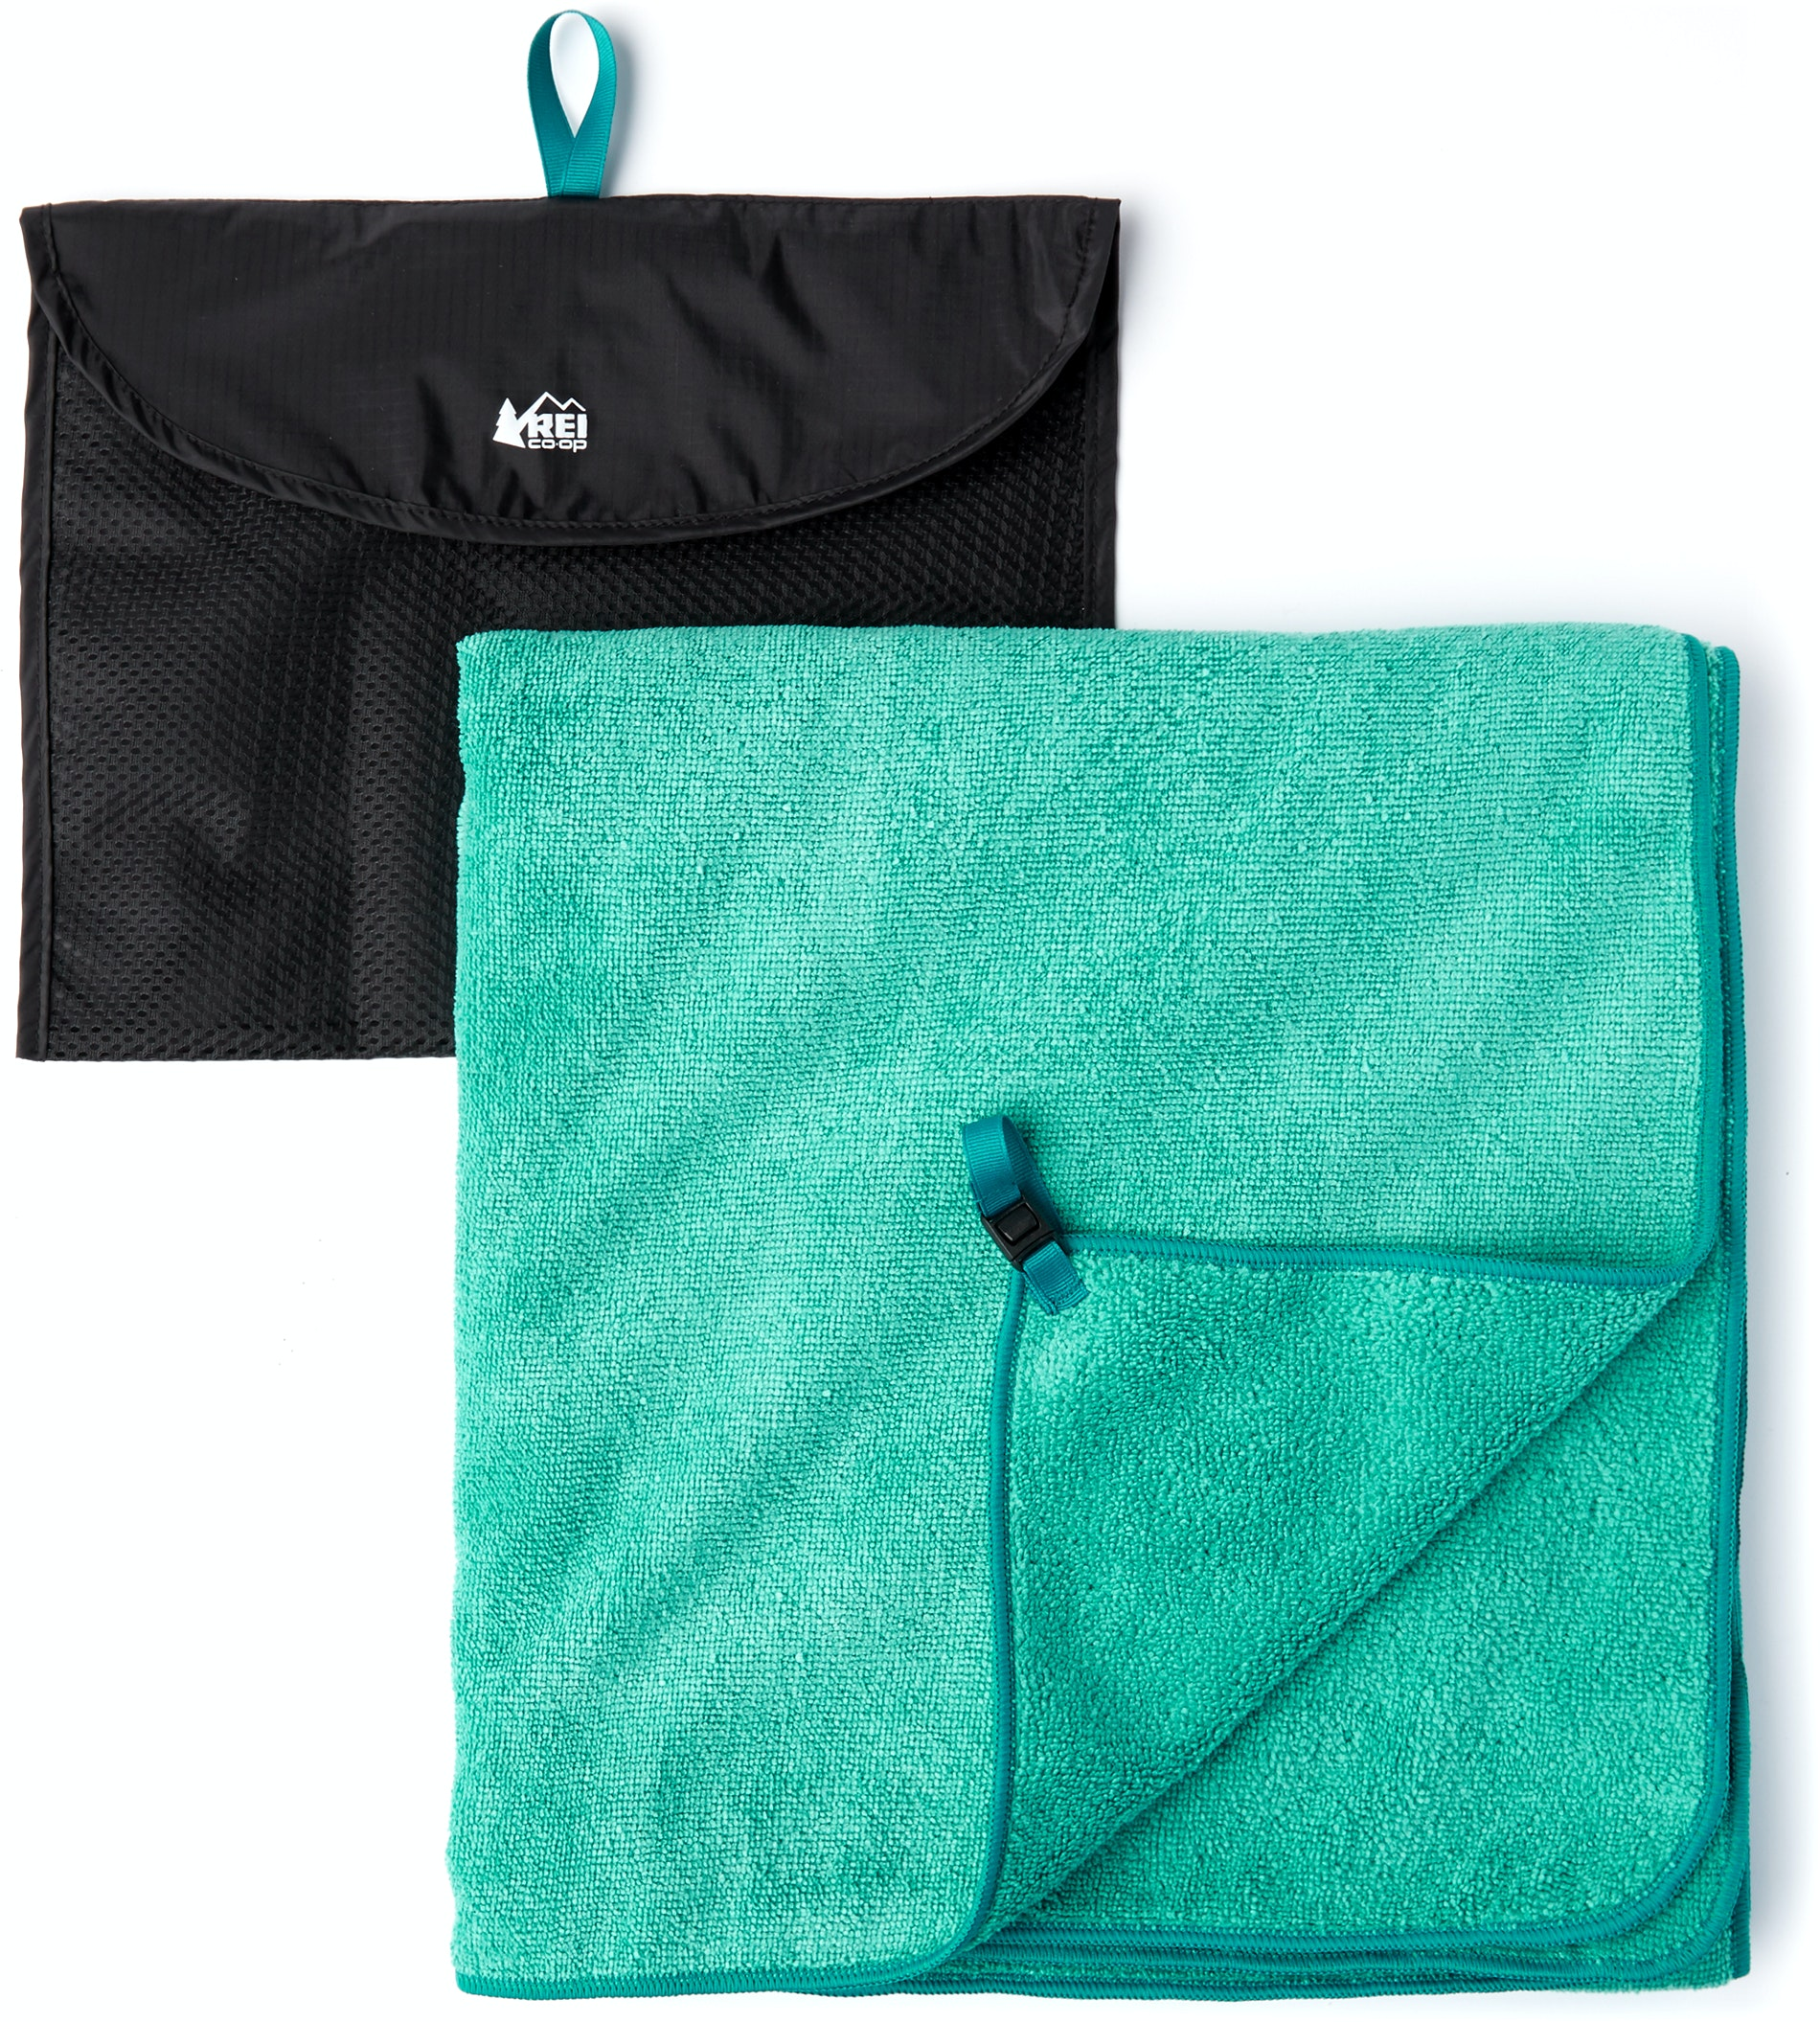 This quick-drying microfiber towel, with carying pouch, from REI is tailor-made for beach runs.